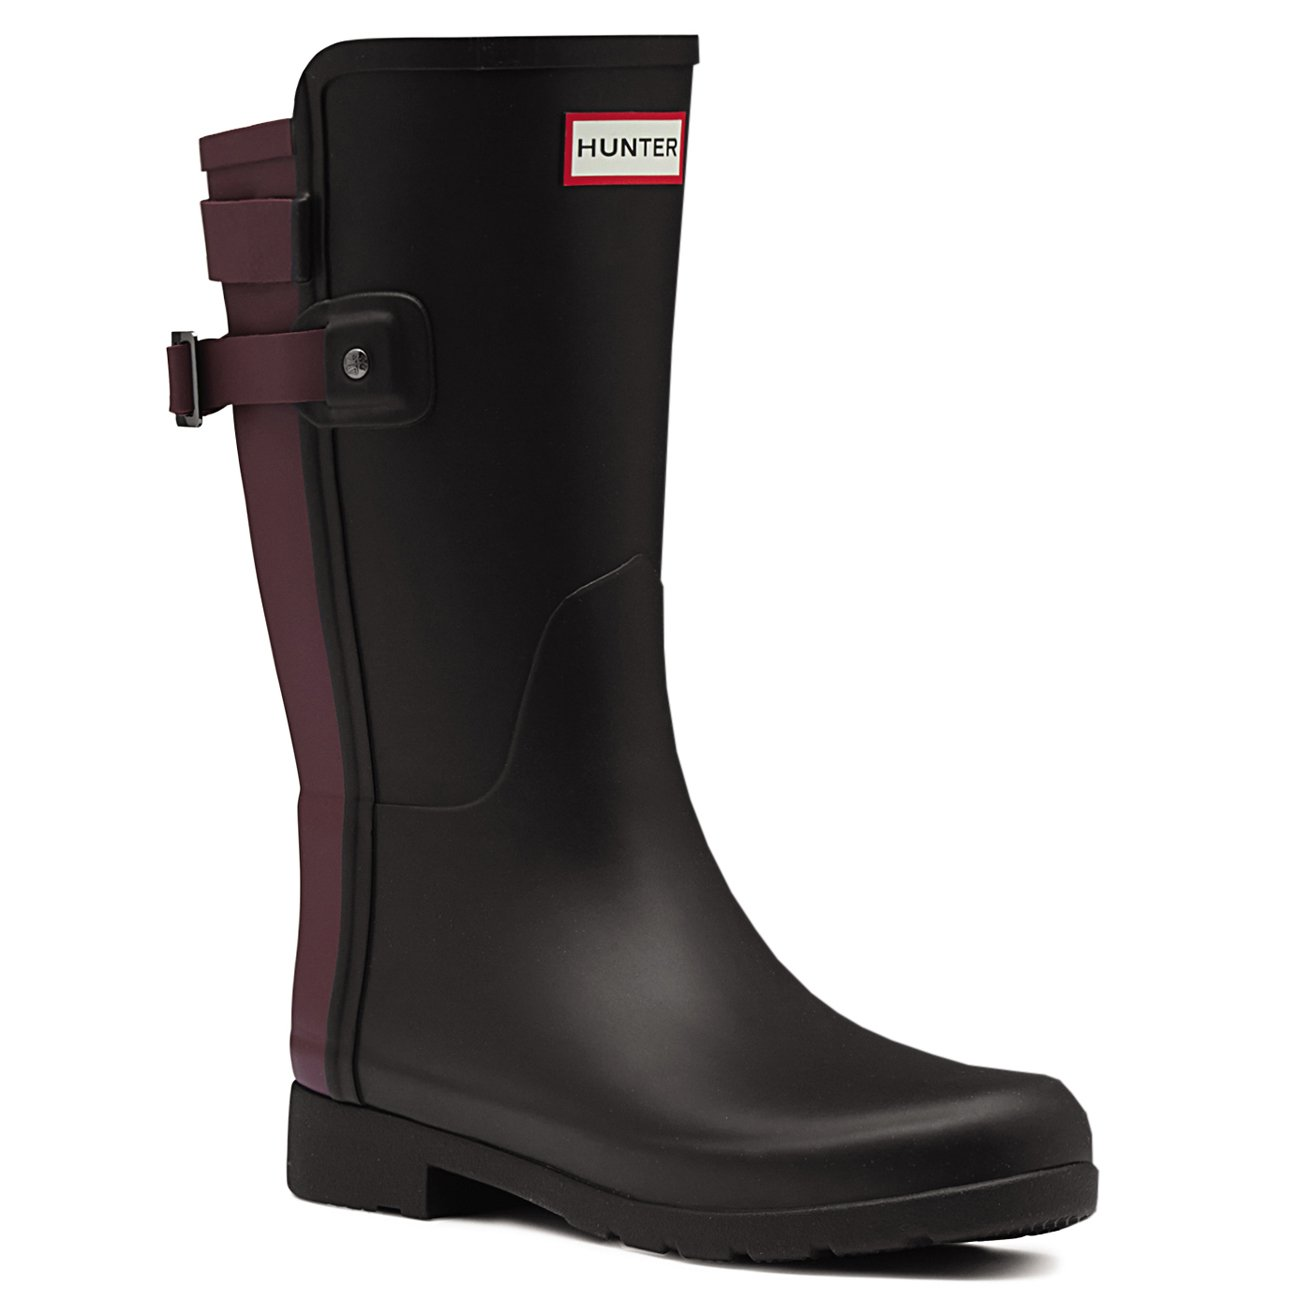 Hunter Womens Original Refined Back Strap Short Wellingtons Rain Boots - Black/dulse - 8